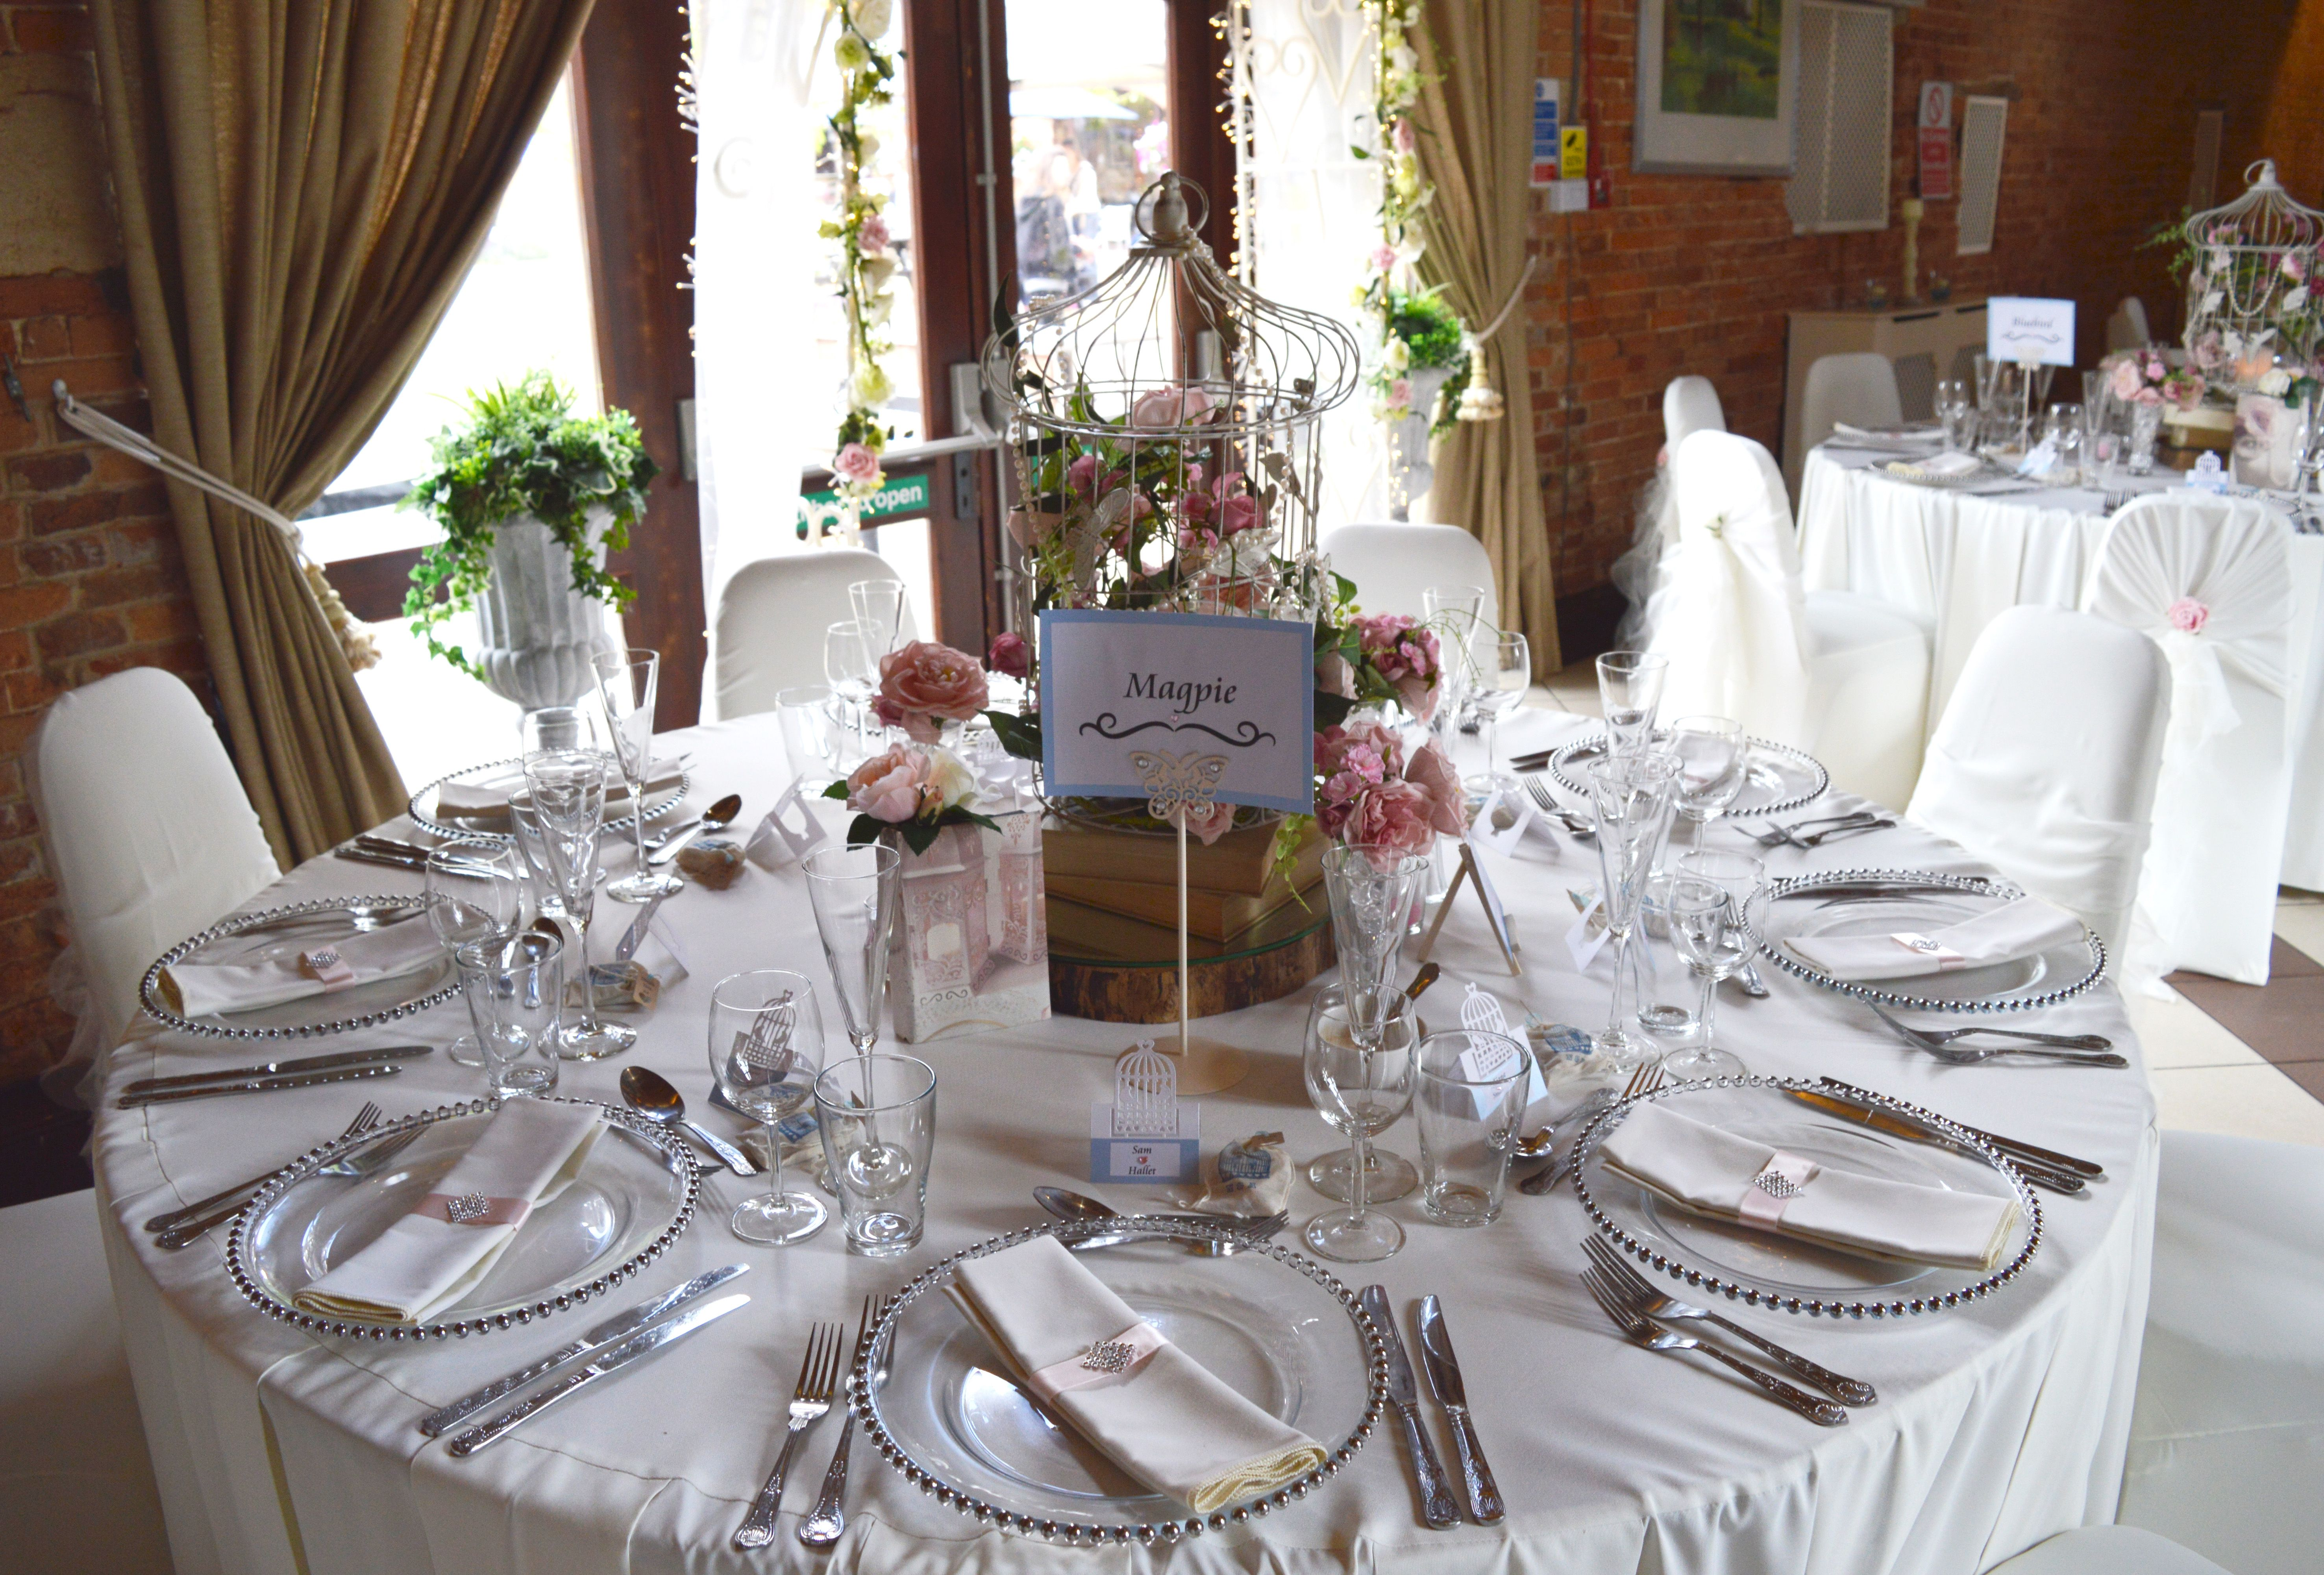 Shabby Chic Birdcage Table Setting With Pink Details Wwwelshamhalleventscouk